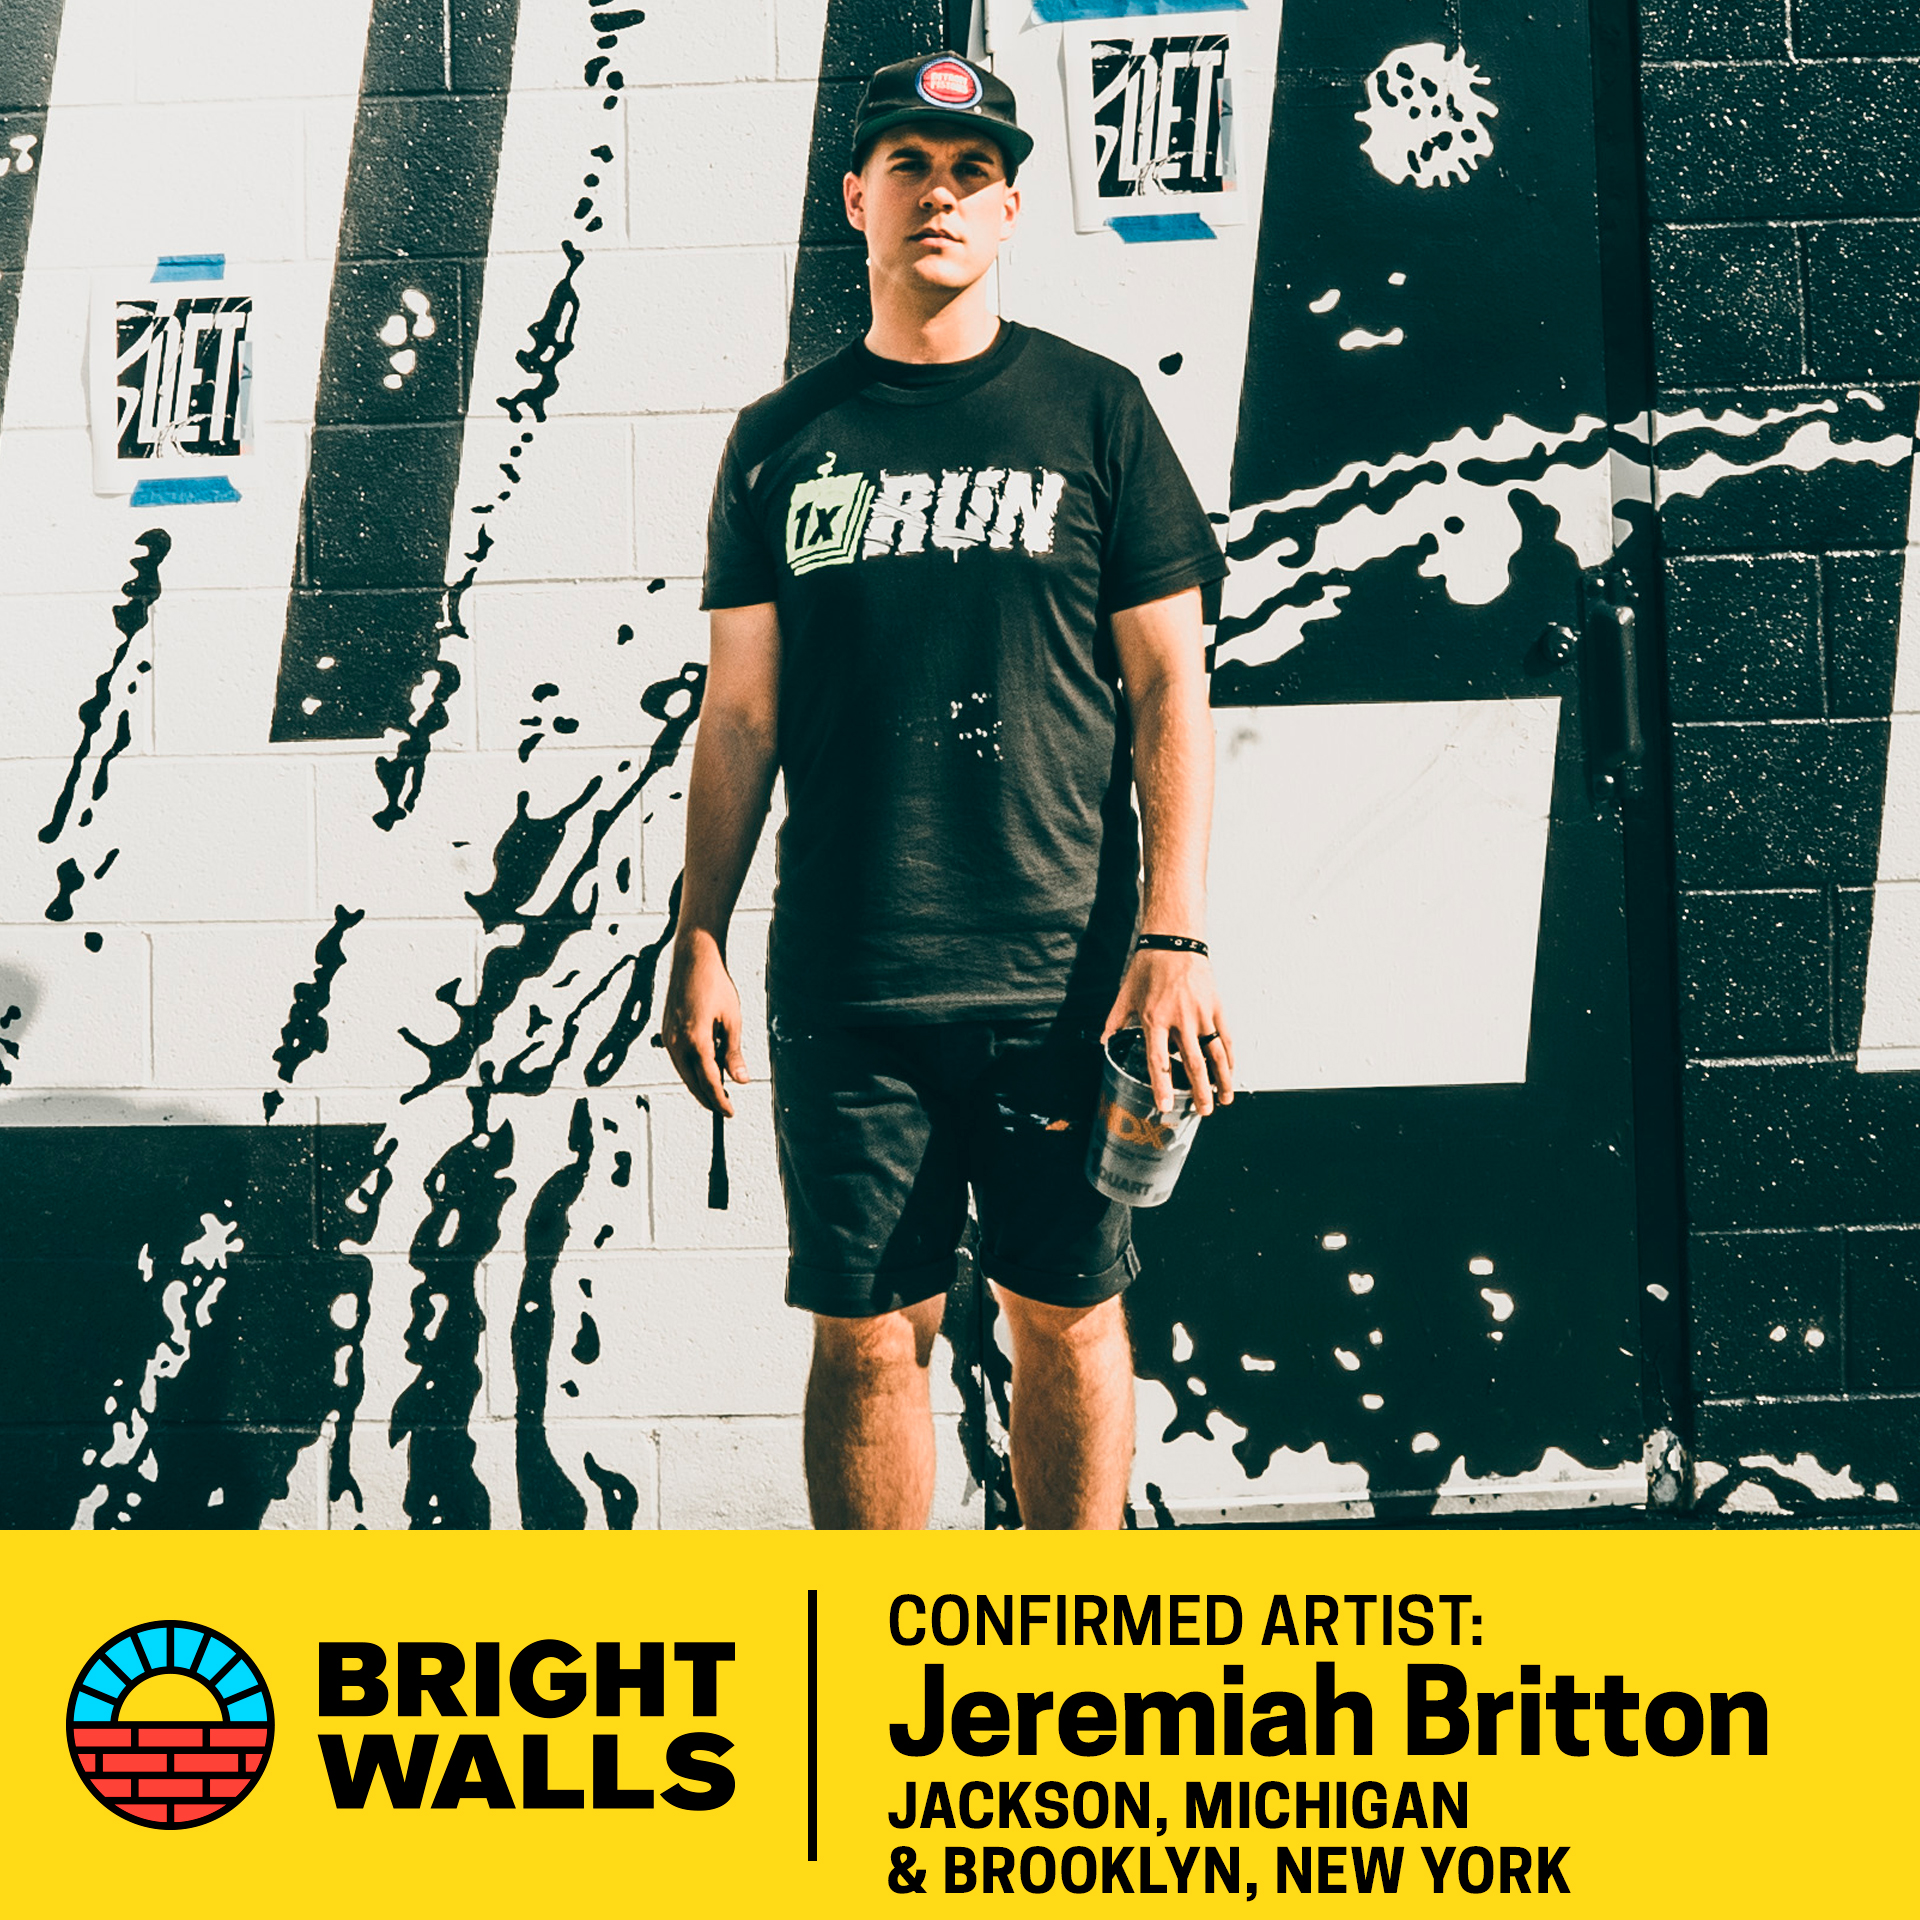 Jeremiah BrittonBrooklyn, New York - Jeremiah Britton is a Jackson, Michigan native currently based in Brooklyn, New York. He is the Creative Director of Art and Graphics at WeWork in New York City.Jeremiah's personal work ranges from branding and expressive typography to large scale public murals. He is the founder of WeWork's in-house environmental art and graphic design team which works to create unique installation art and graphic design inside of each WeWork space around the world. In addition, Jeremiah has worked with a range of freelance clients including AOL, Shake Shack, Microsoft, McKinney New York for Samsung, DDB New York, Scratch Viacom, West Elm, and Meetup. His work has been recognized by multiple publications and organizations such as The Art Directors Club and Computer Arts Magazine.